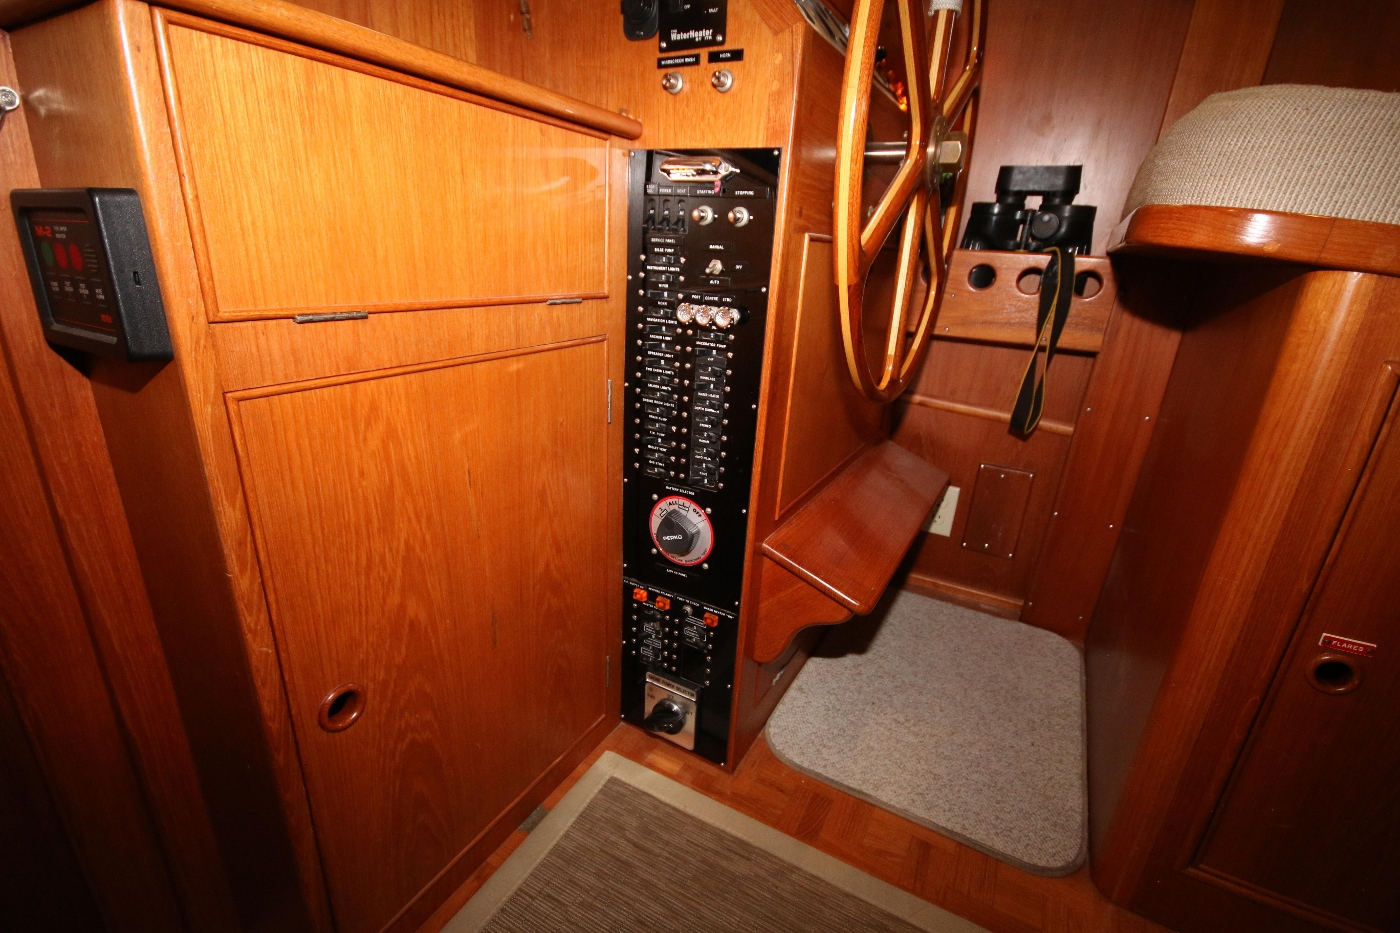 1988 Grand Banks 32, Electrical Panel near Helm